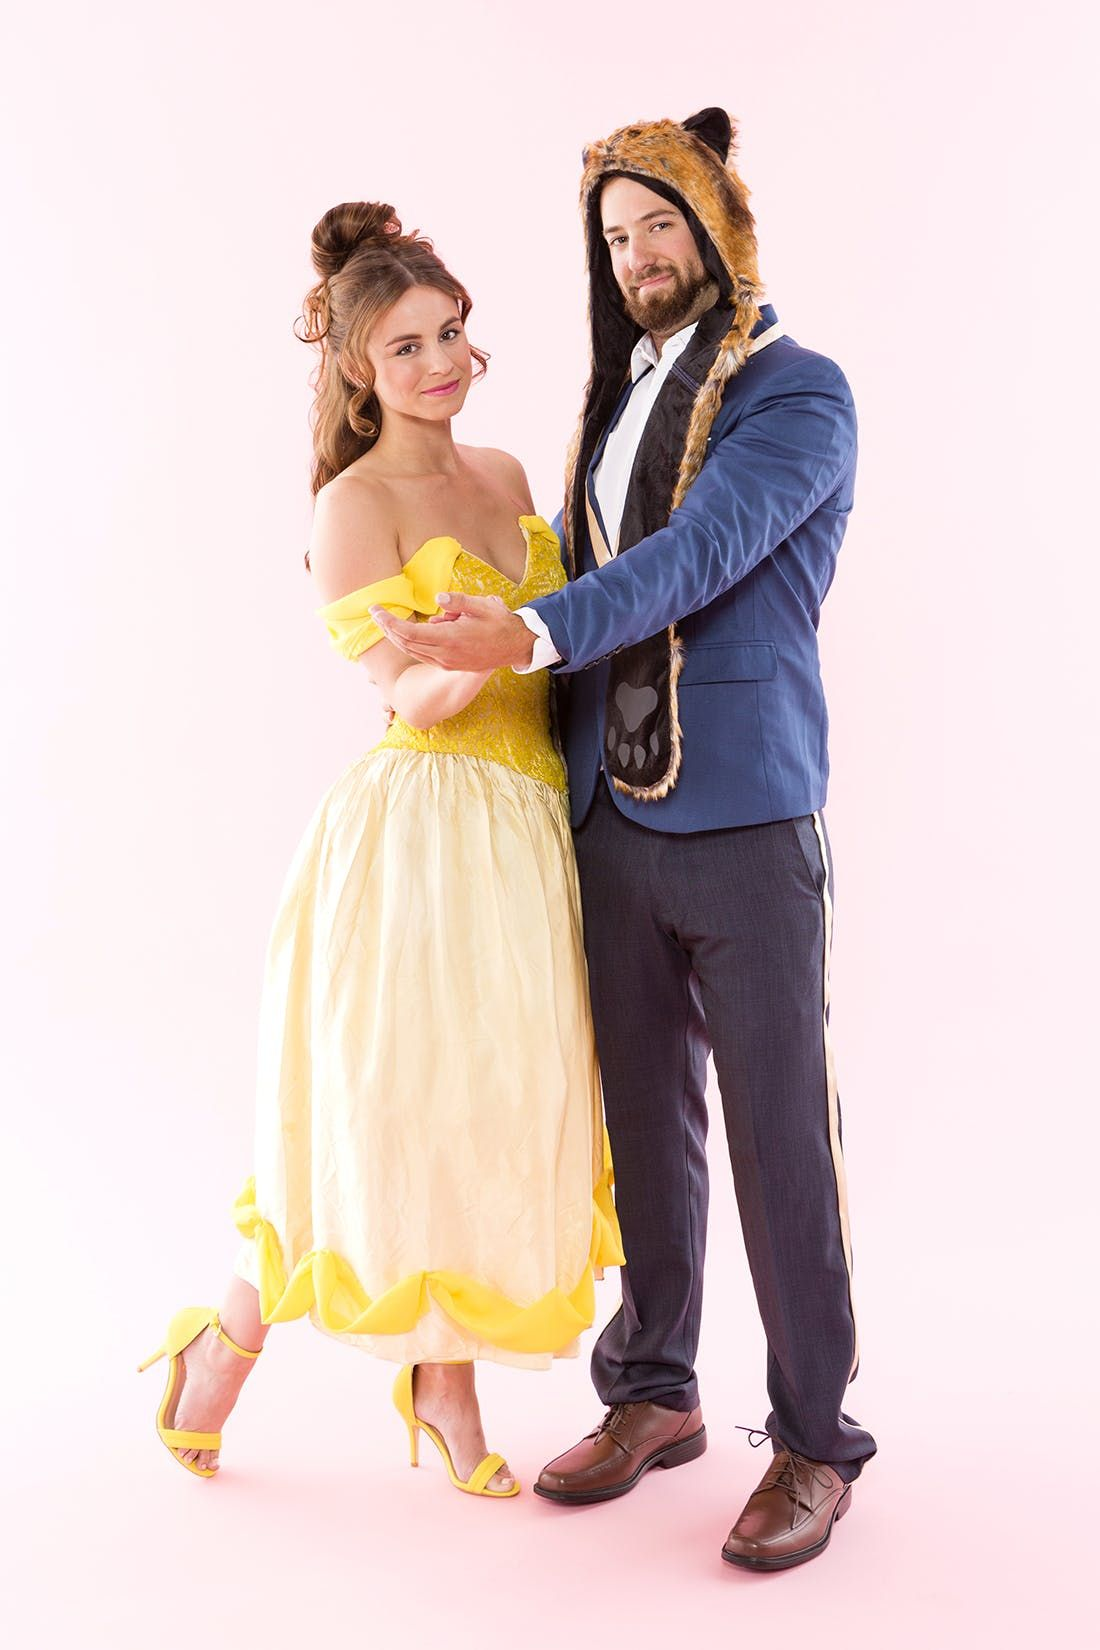 Wear This Beauty and the Beast Couples Costume for an